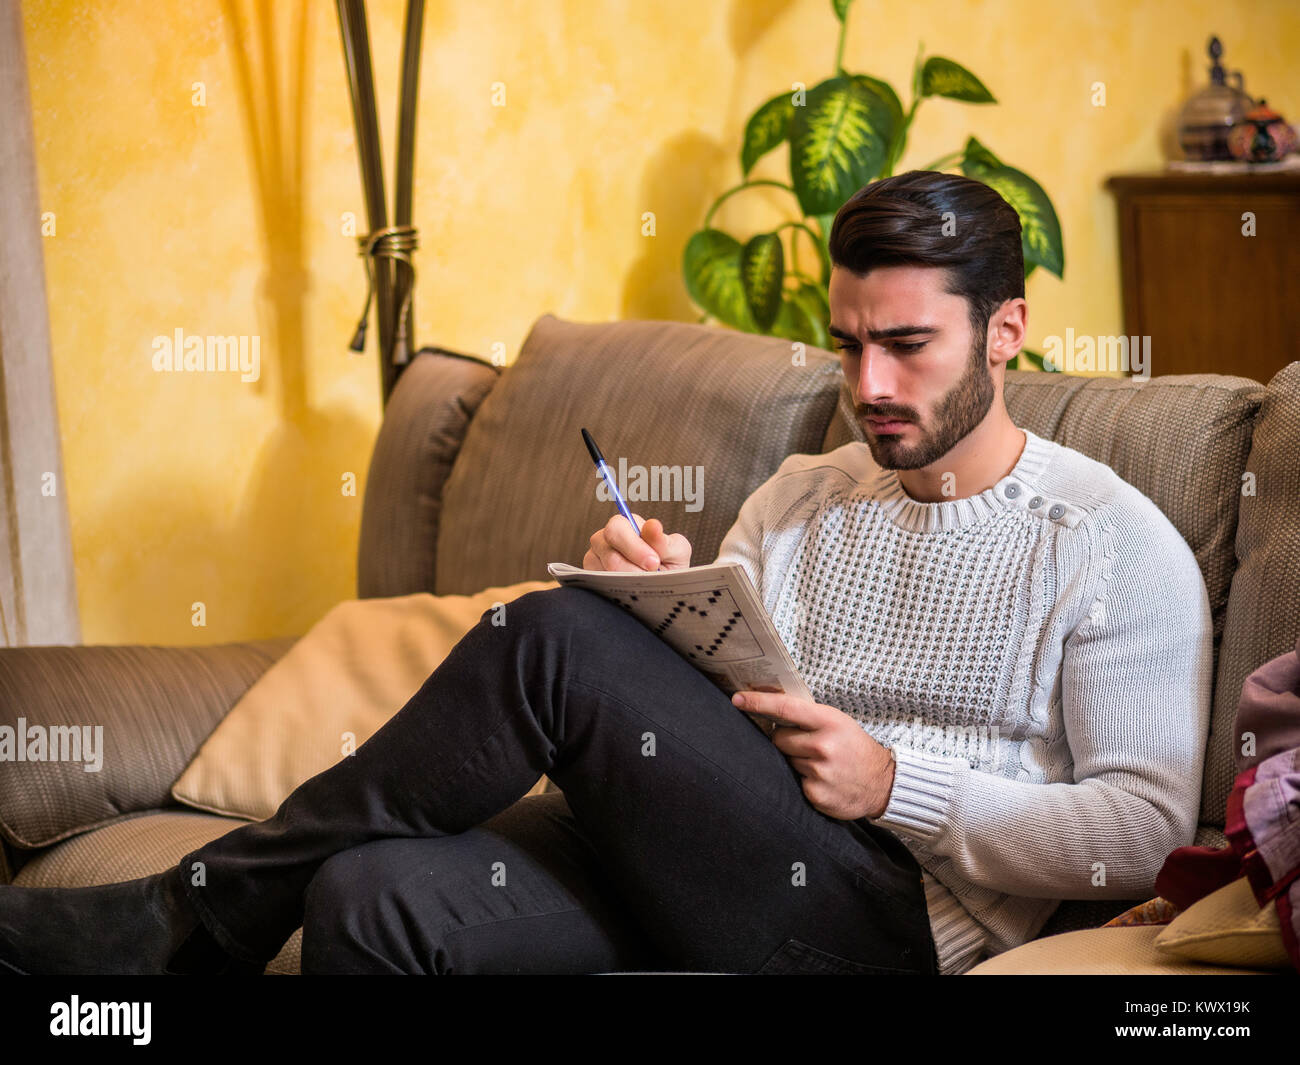 Young Man Sitting Doing A Crossword Puzzle Looking Thoughtfully At A Stock Photo Alamy